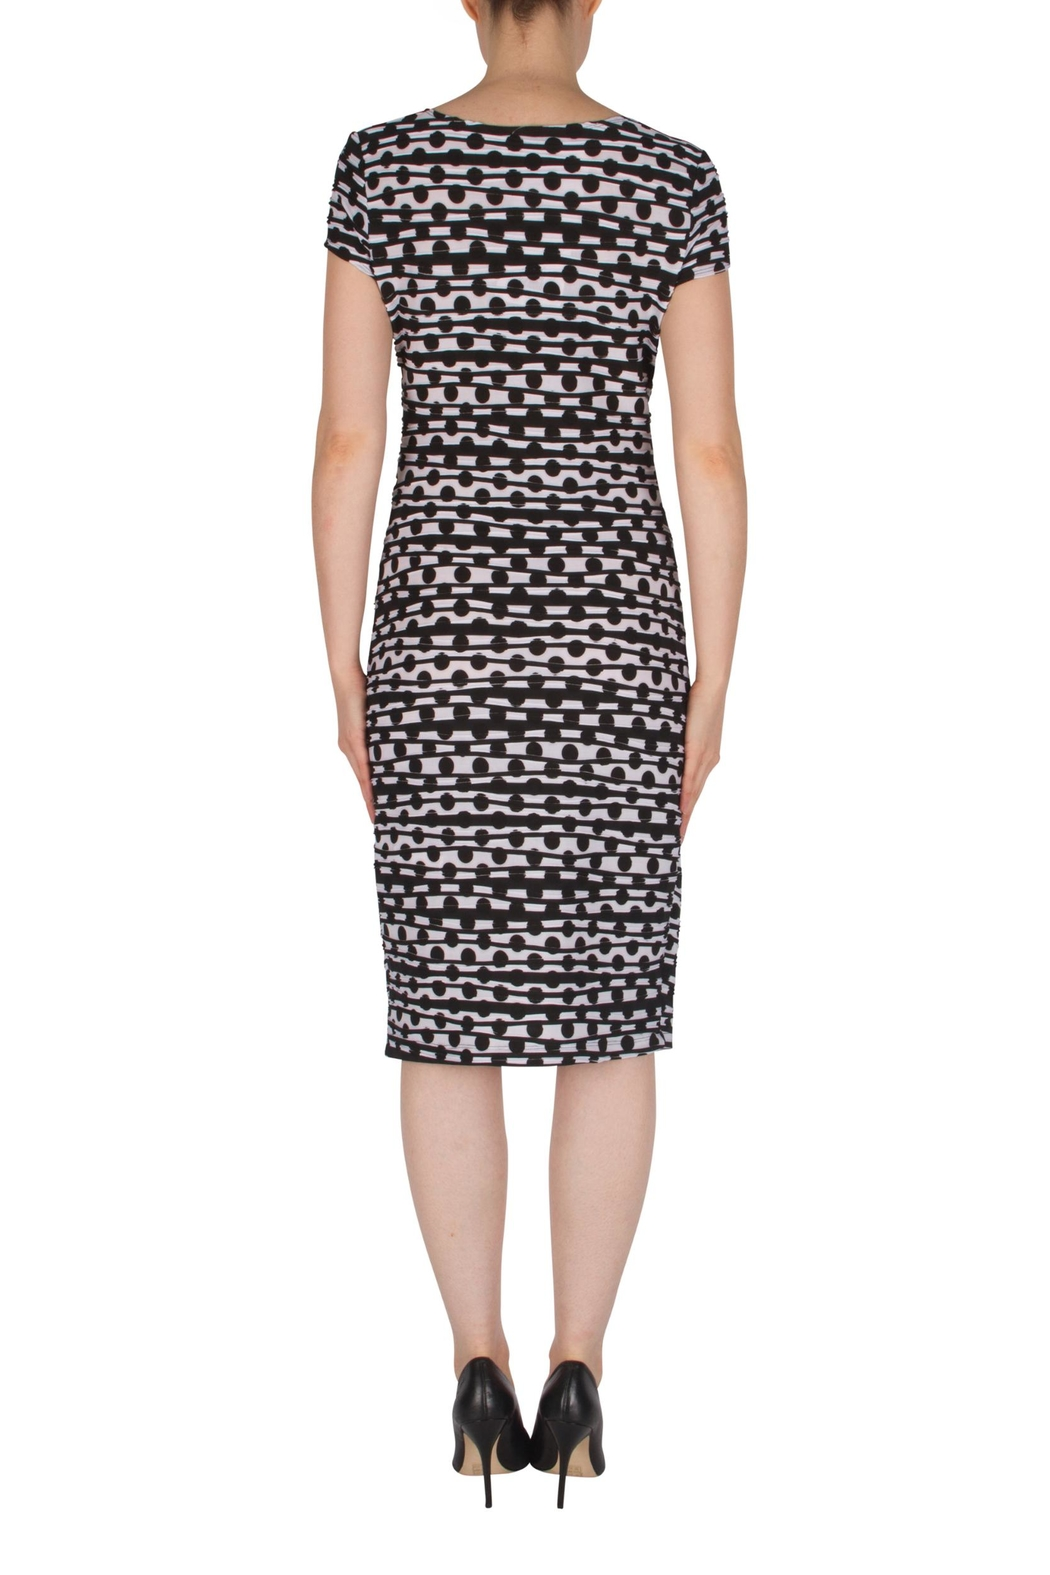 Joseph Ribkoff Faux-Wrap Dress - Side Cropped Image